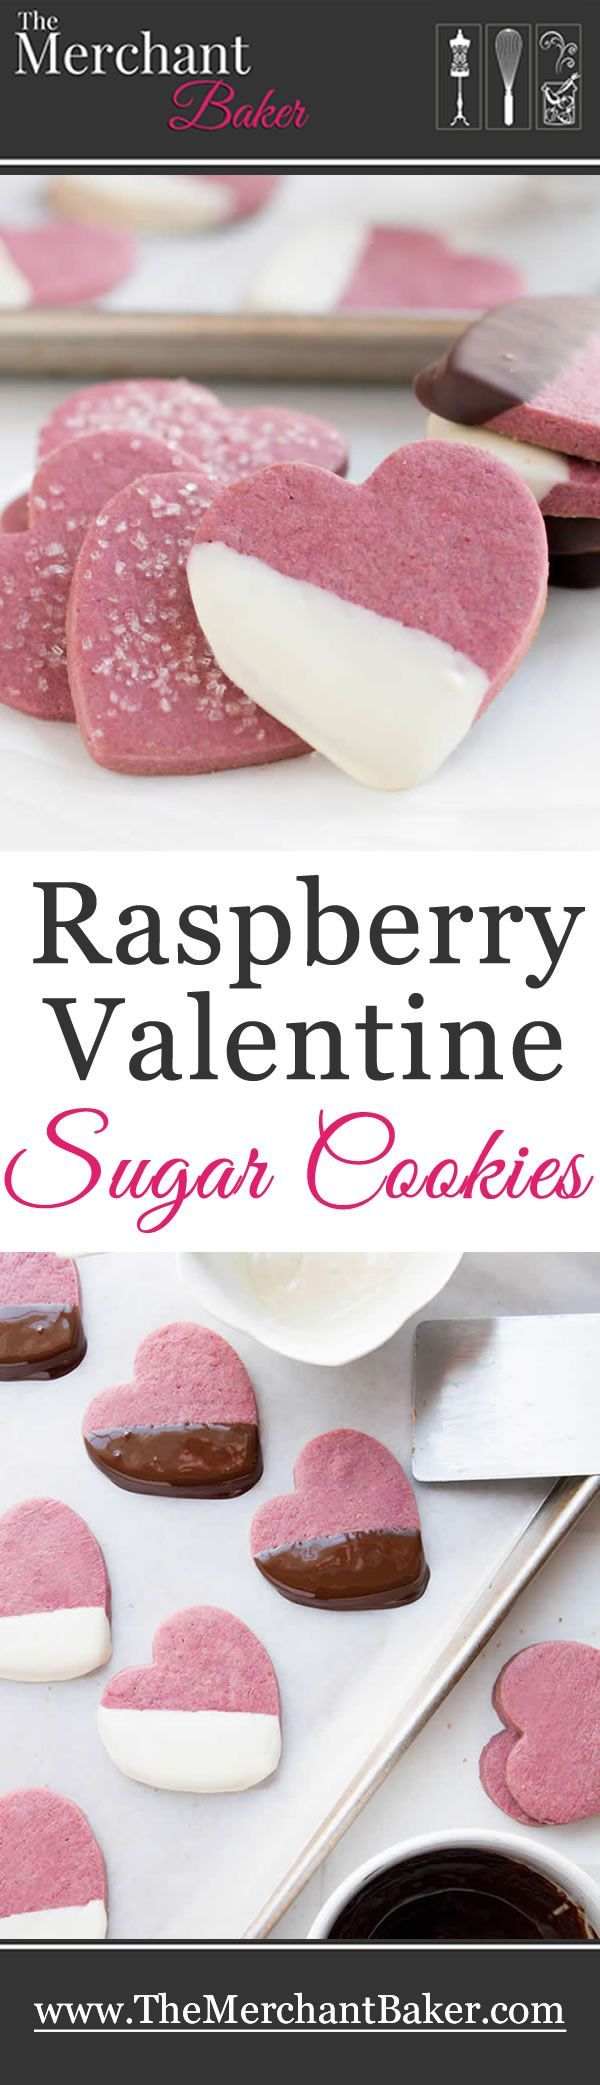 Raspberry Valentine Sugar Cookies. Real raspberries add lots of natural color and flavor in this delicious twist on traditional sugar cookies.